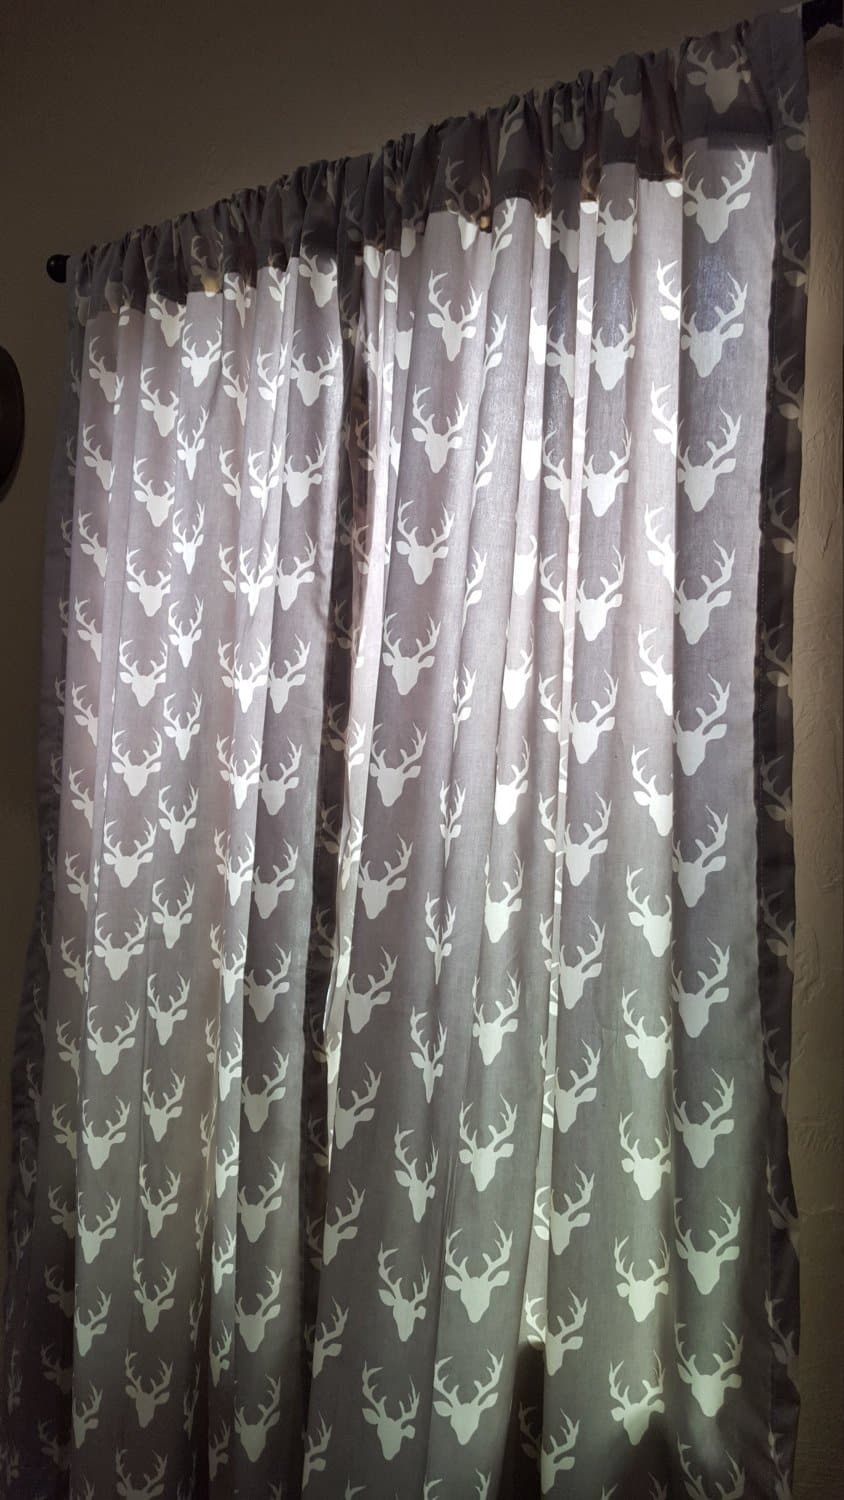 Fawn Curtains- Tulip Fawn Curtain Panels or Valance